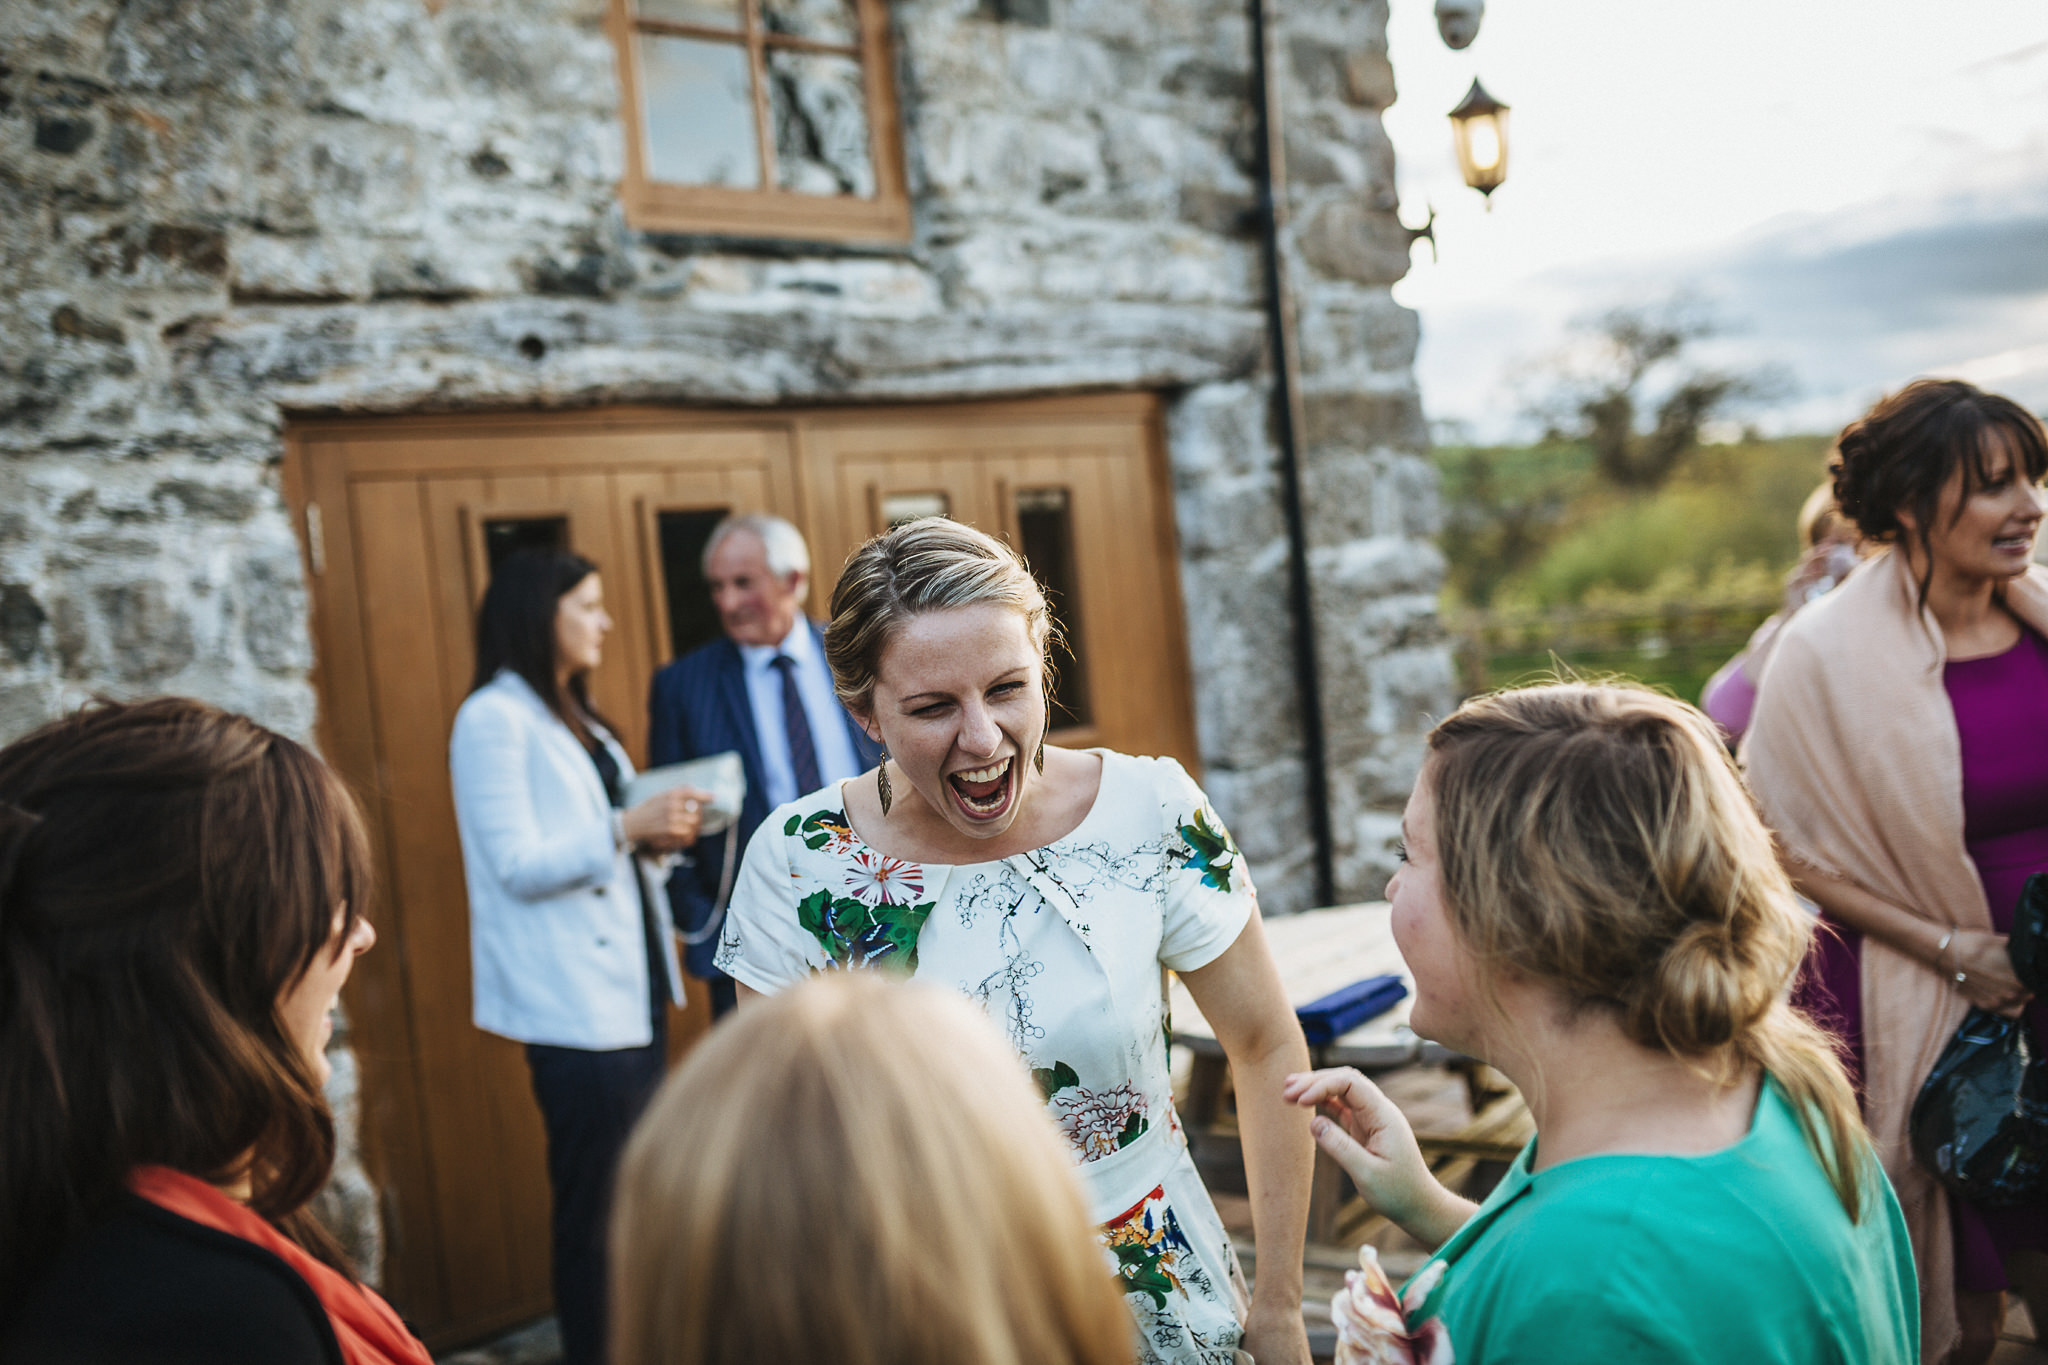 plas-isaf-corwen-north wales wedding-photography-photographer-91078